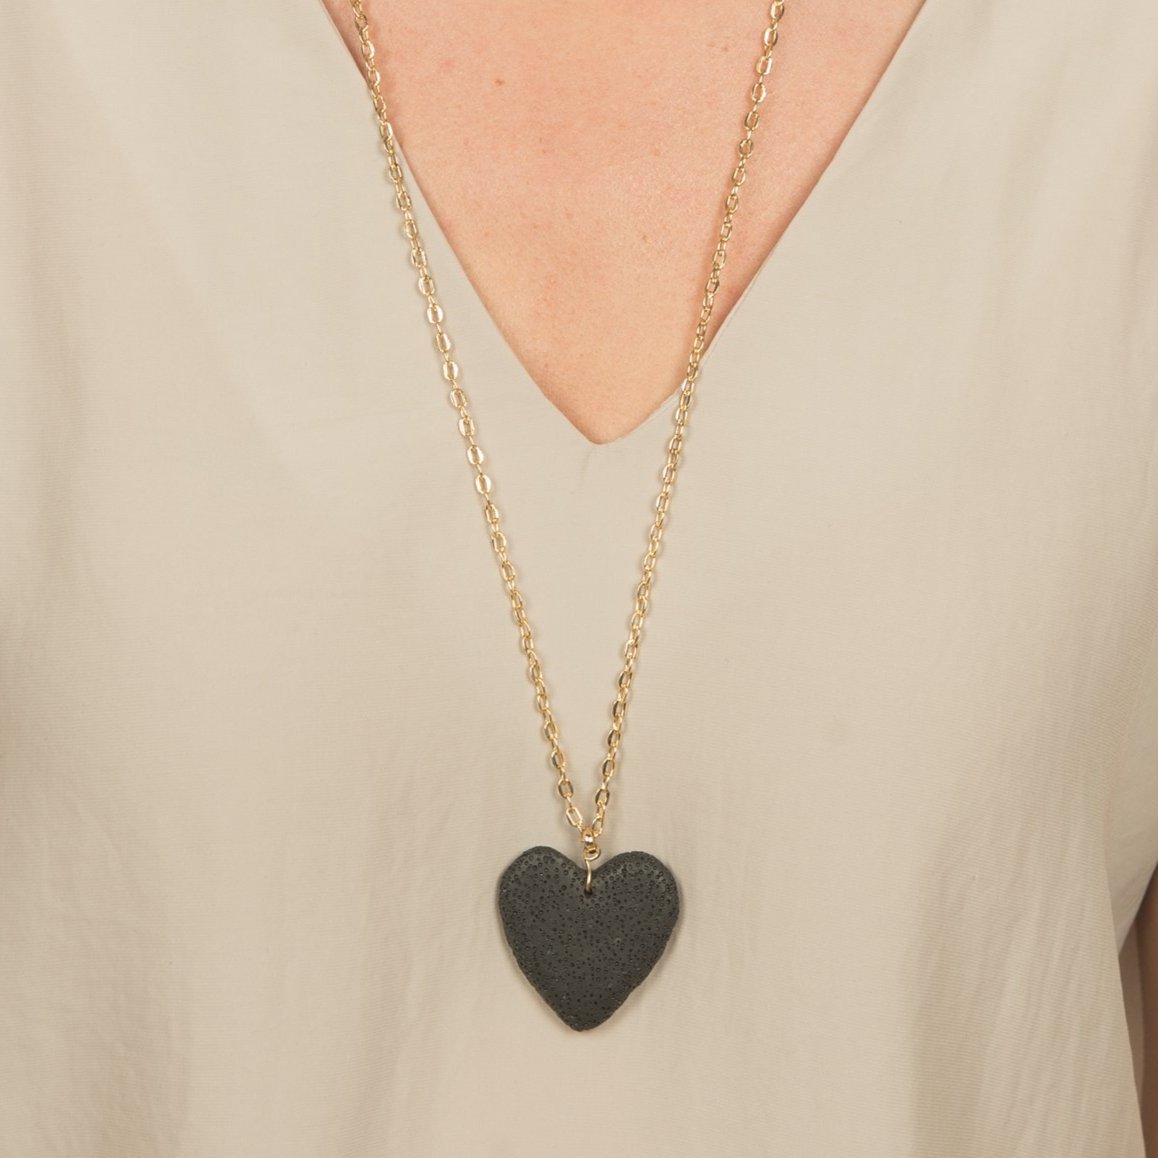 Lava Rock Heart Necklace